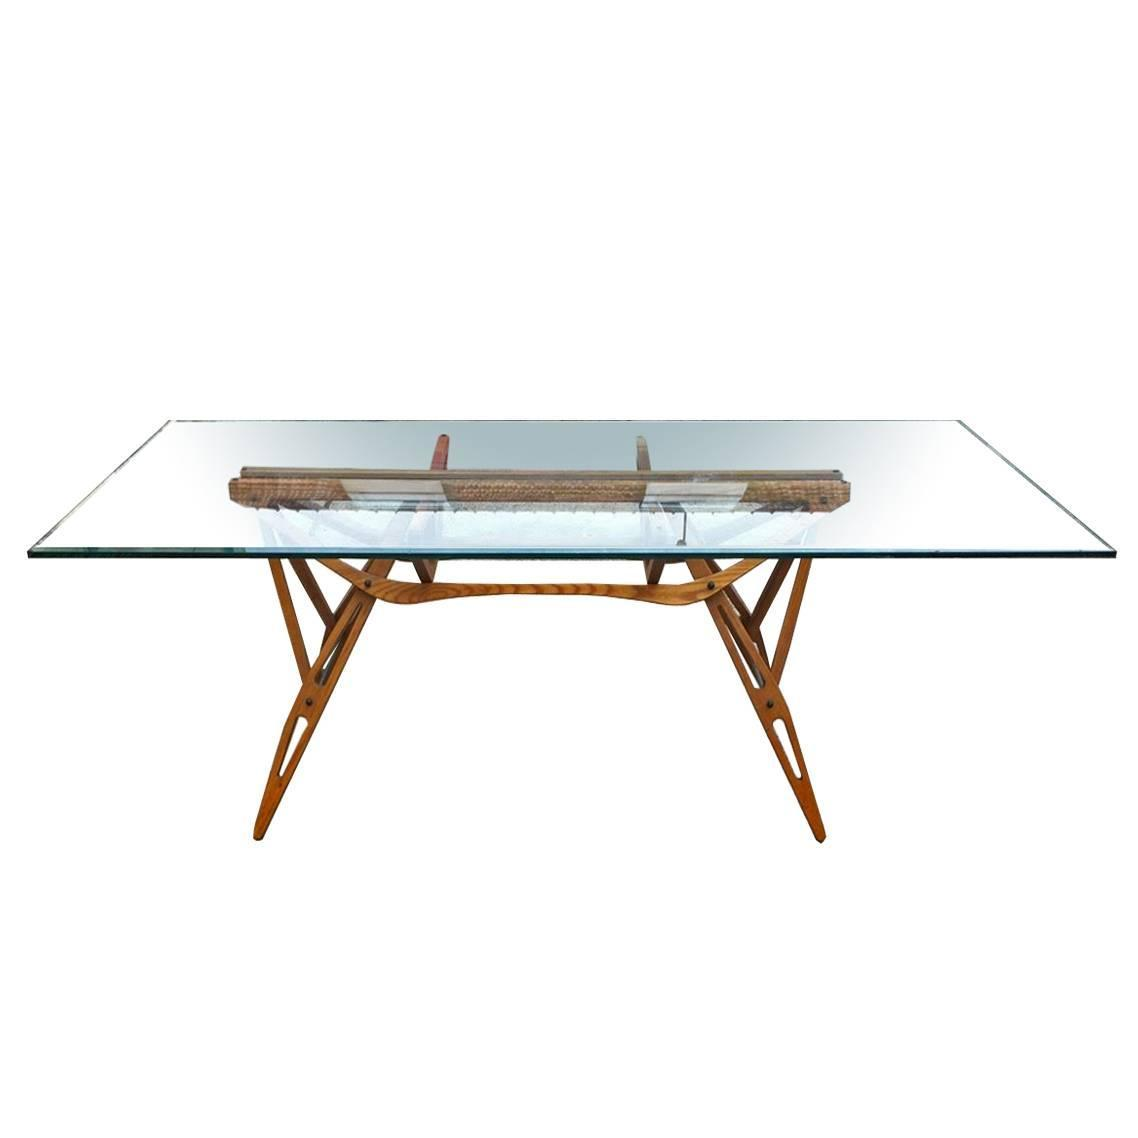 Reale table design carlo mollino zanotta 1990 at 1stdibs for Table zanotta